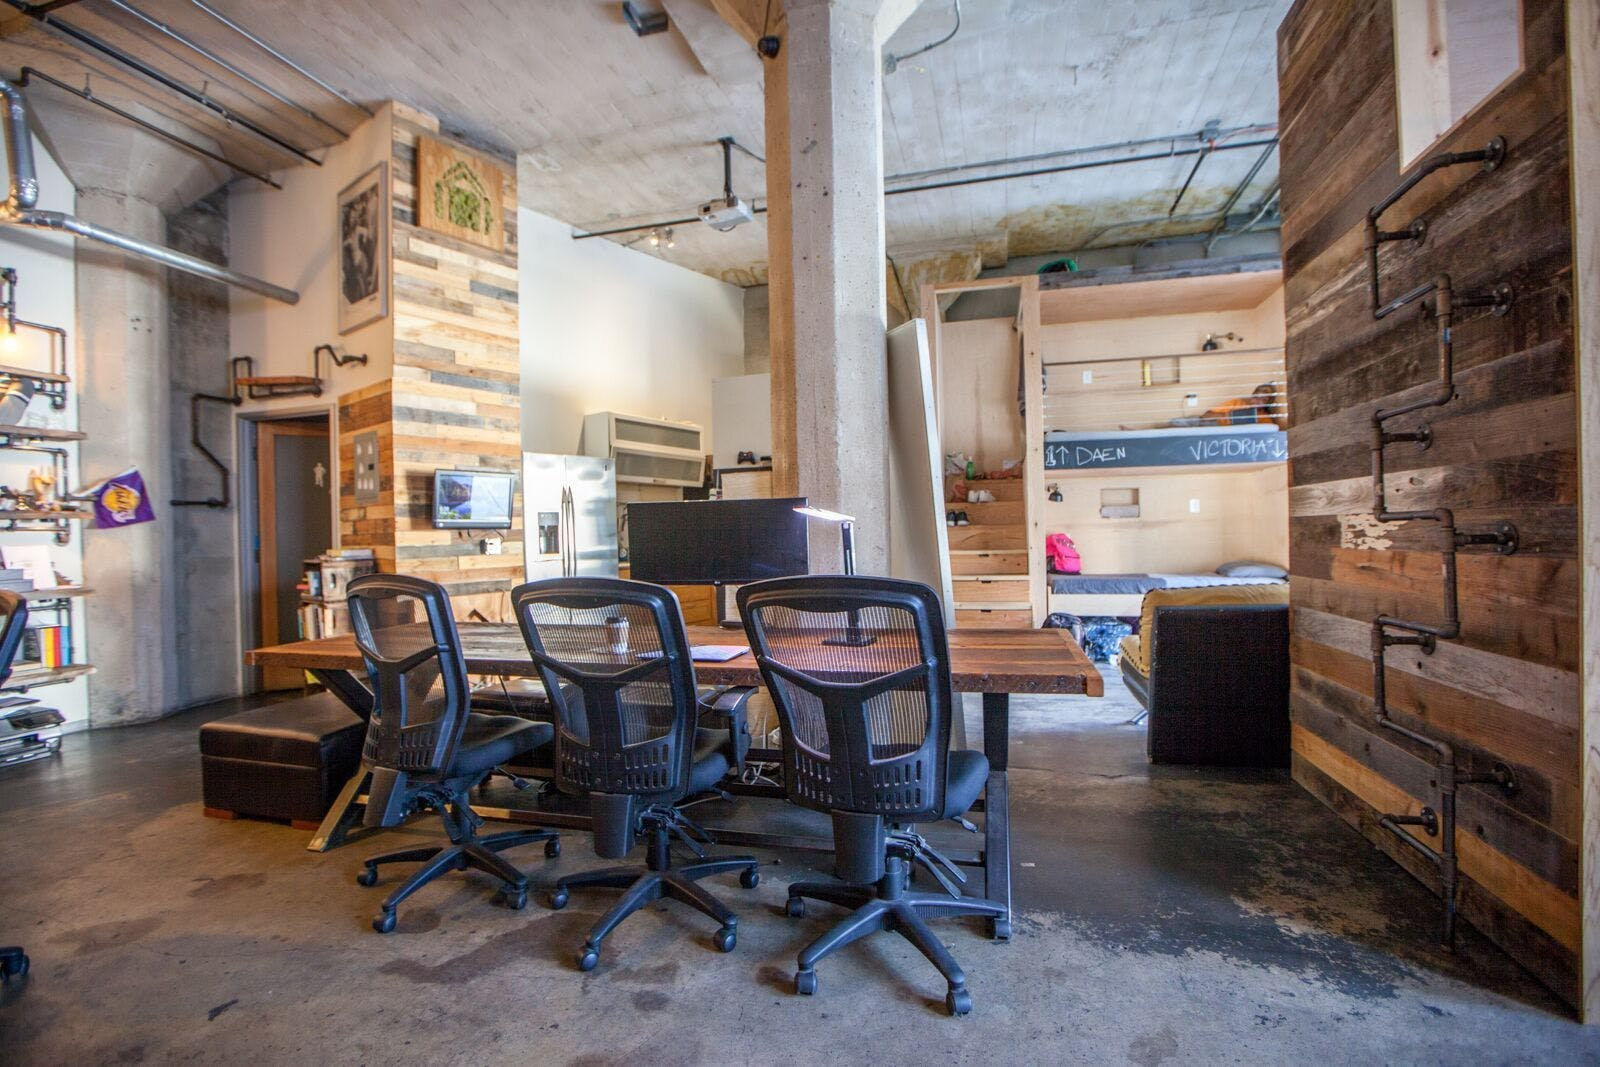 7 Residents | Cosmo St - Hollywood, Off the Walk of Fame | Pods with TV + Coworking